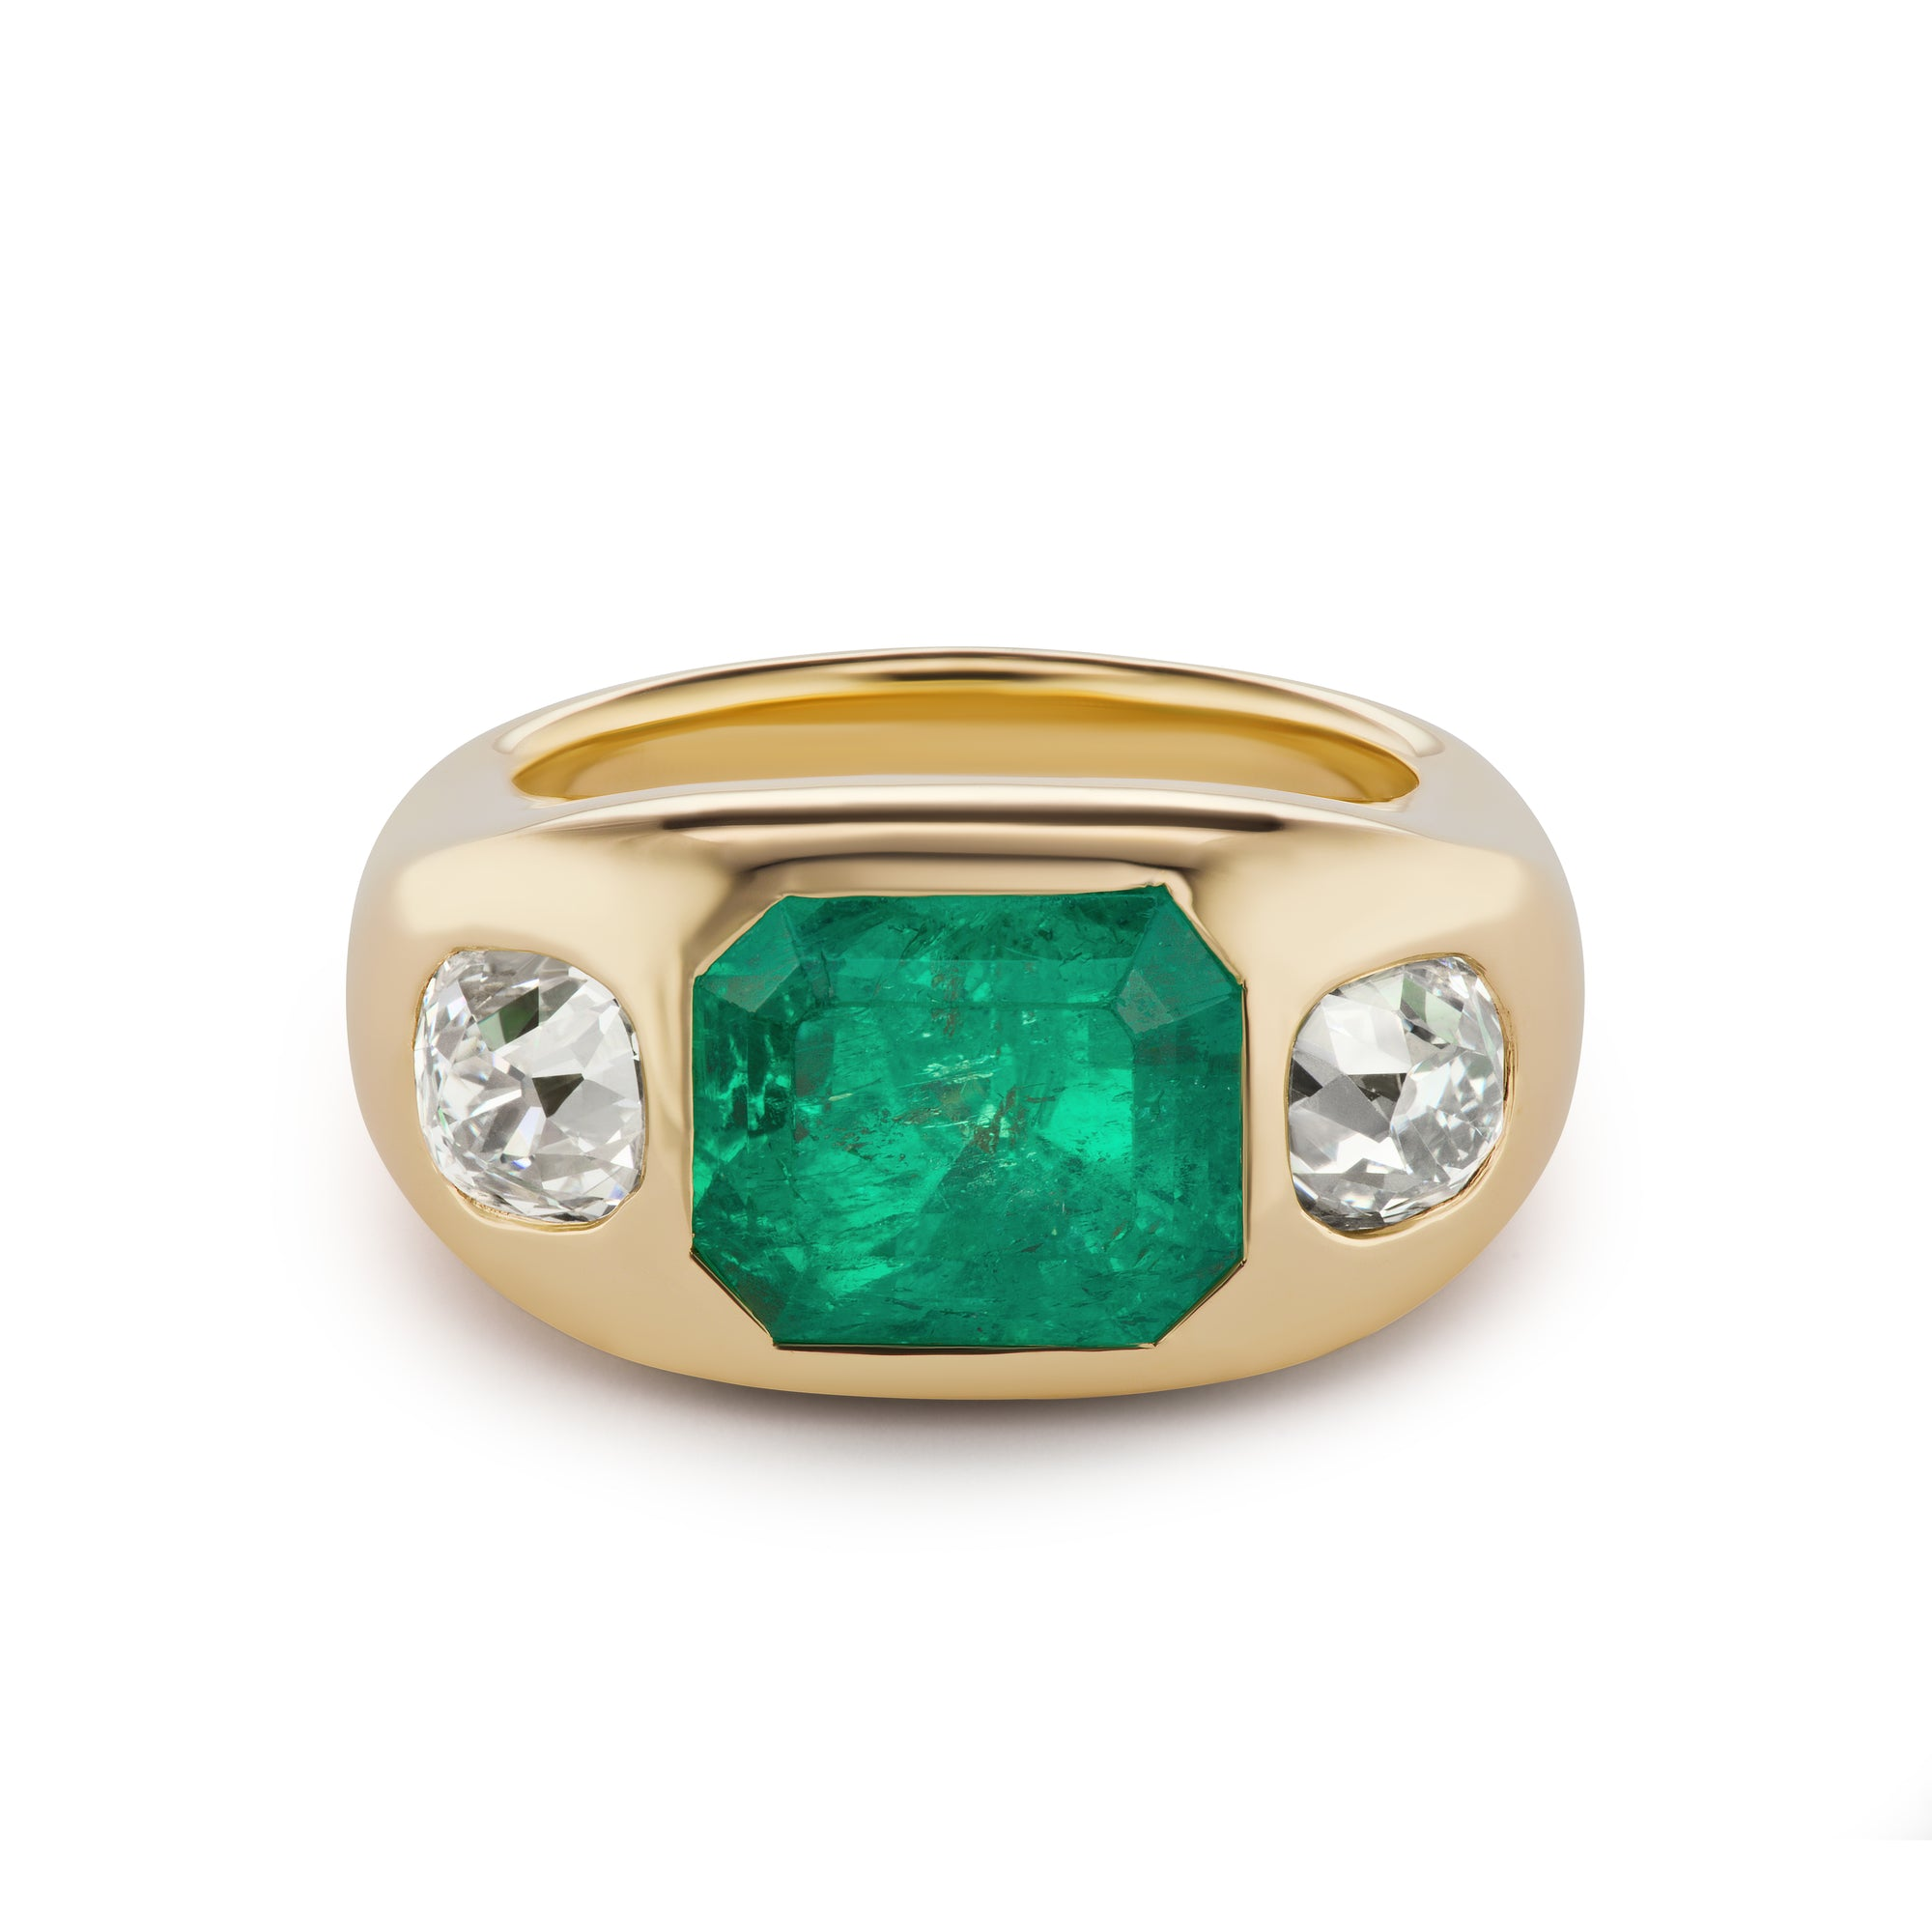 One-of-a-Kind Emerald and European-cut Diamond Gypsy Ring